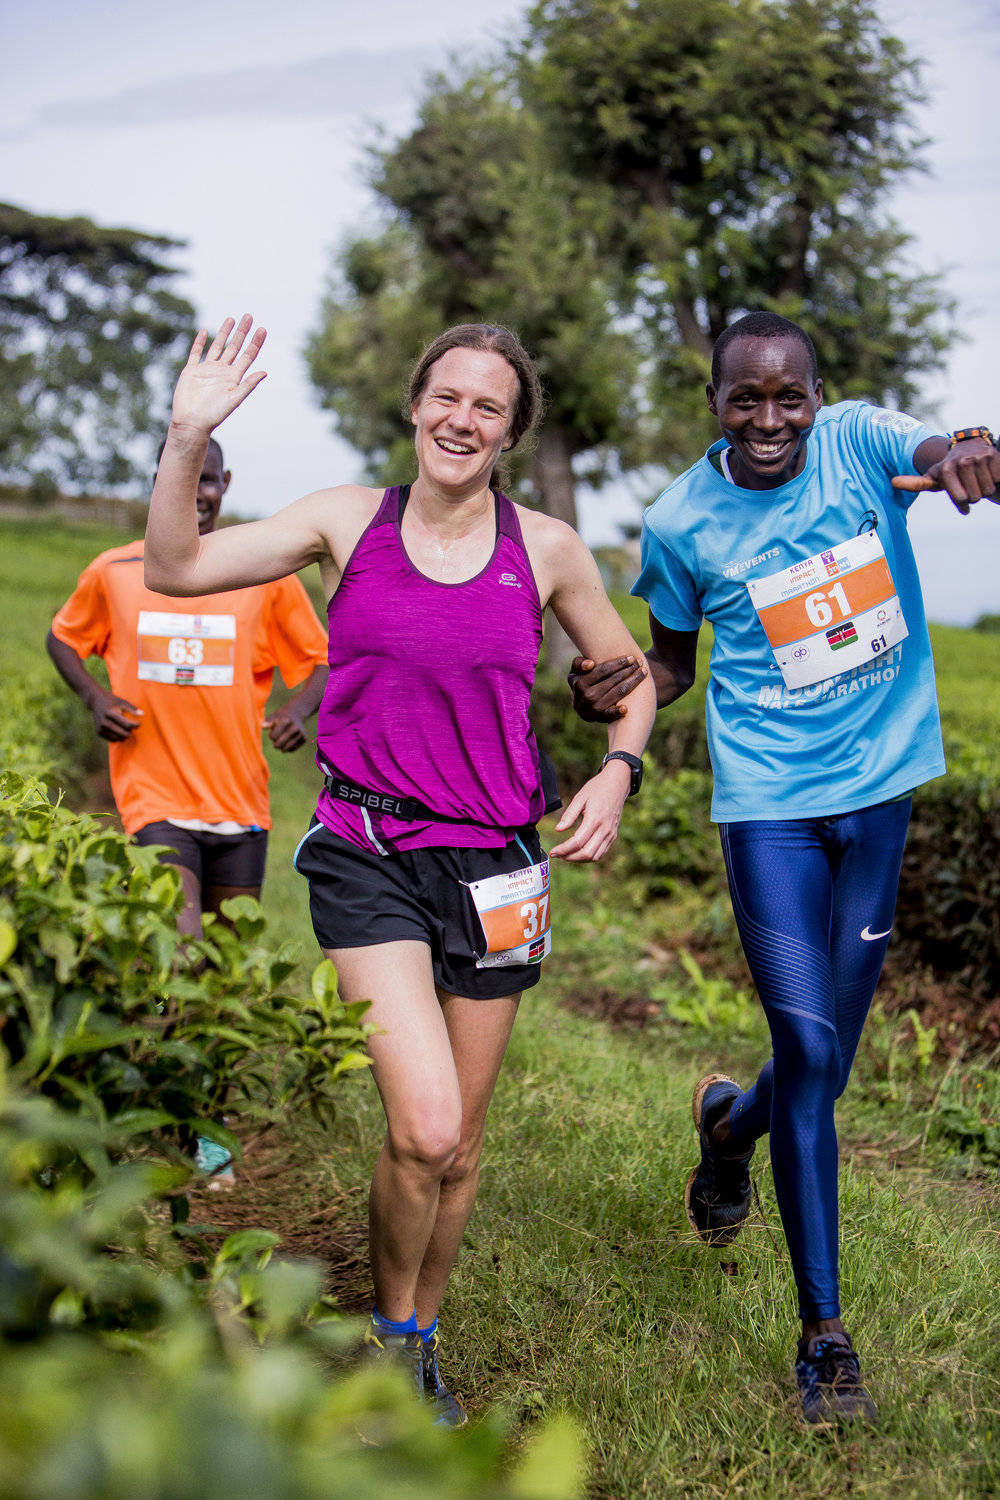 We've got  10k, half, and full marathons  on offer in Kericho.  Join with hundreds of Kenyans as we run a stunning route through the cool highlands in the centre of the country.   Click here for more race details.